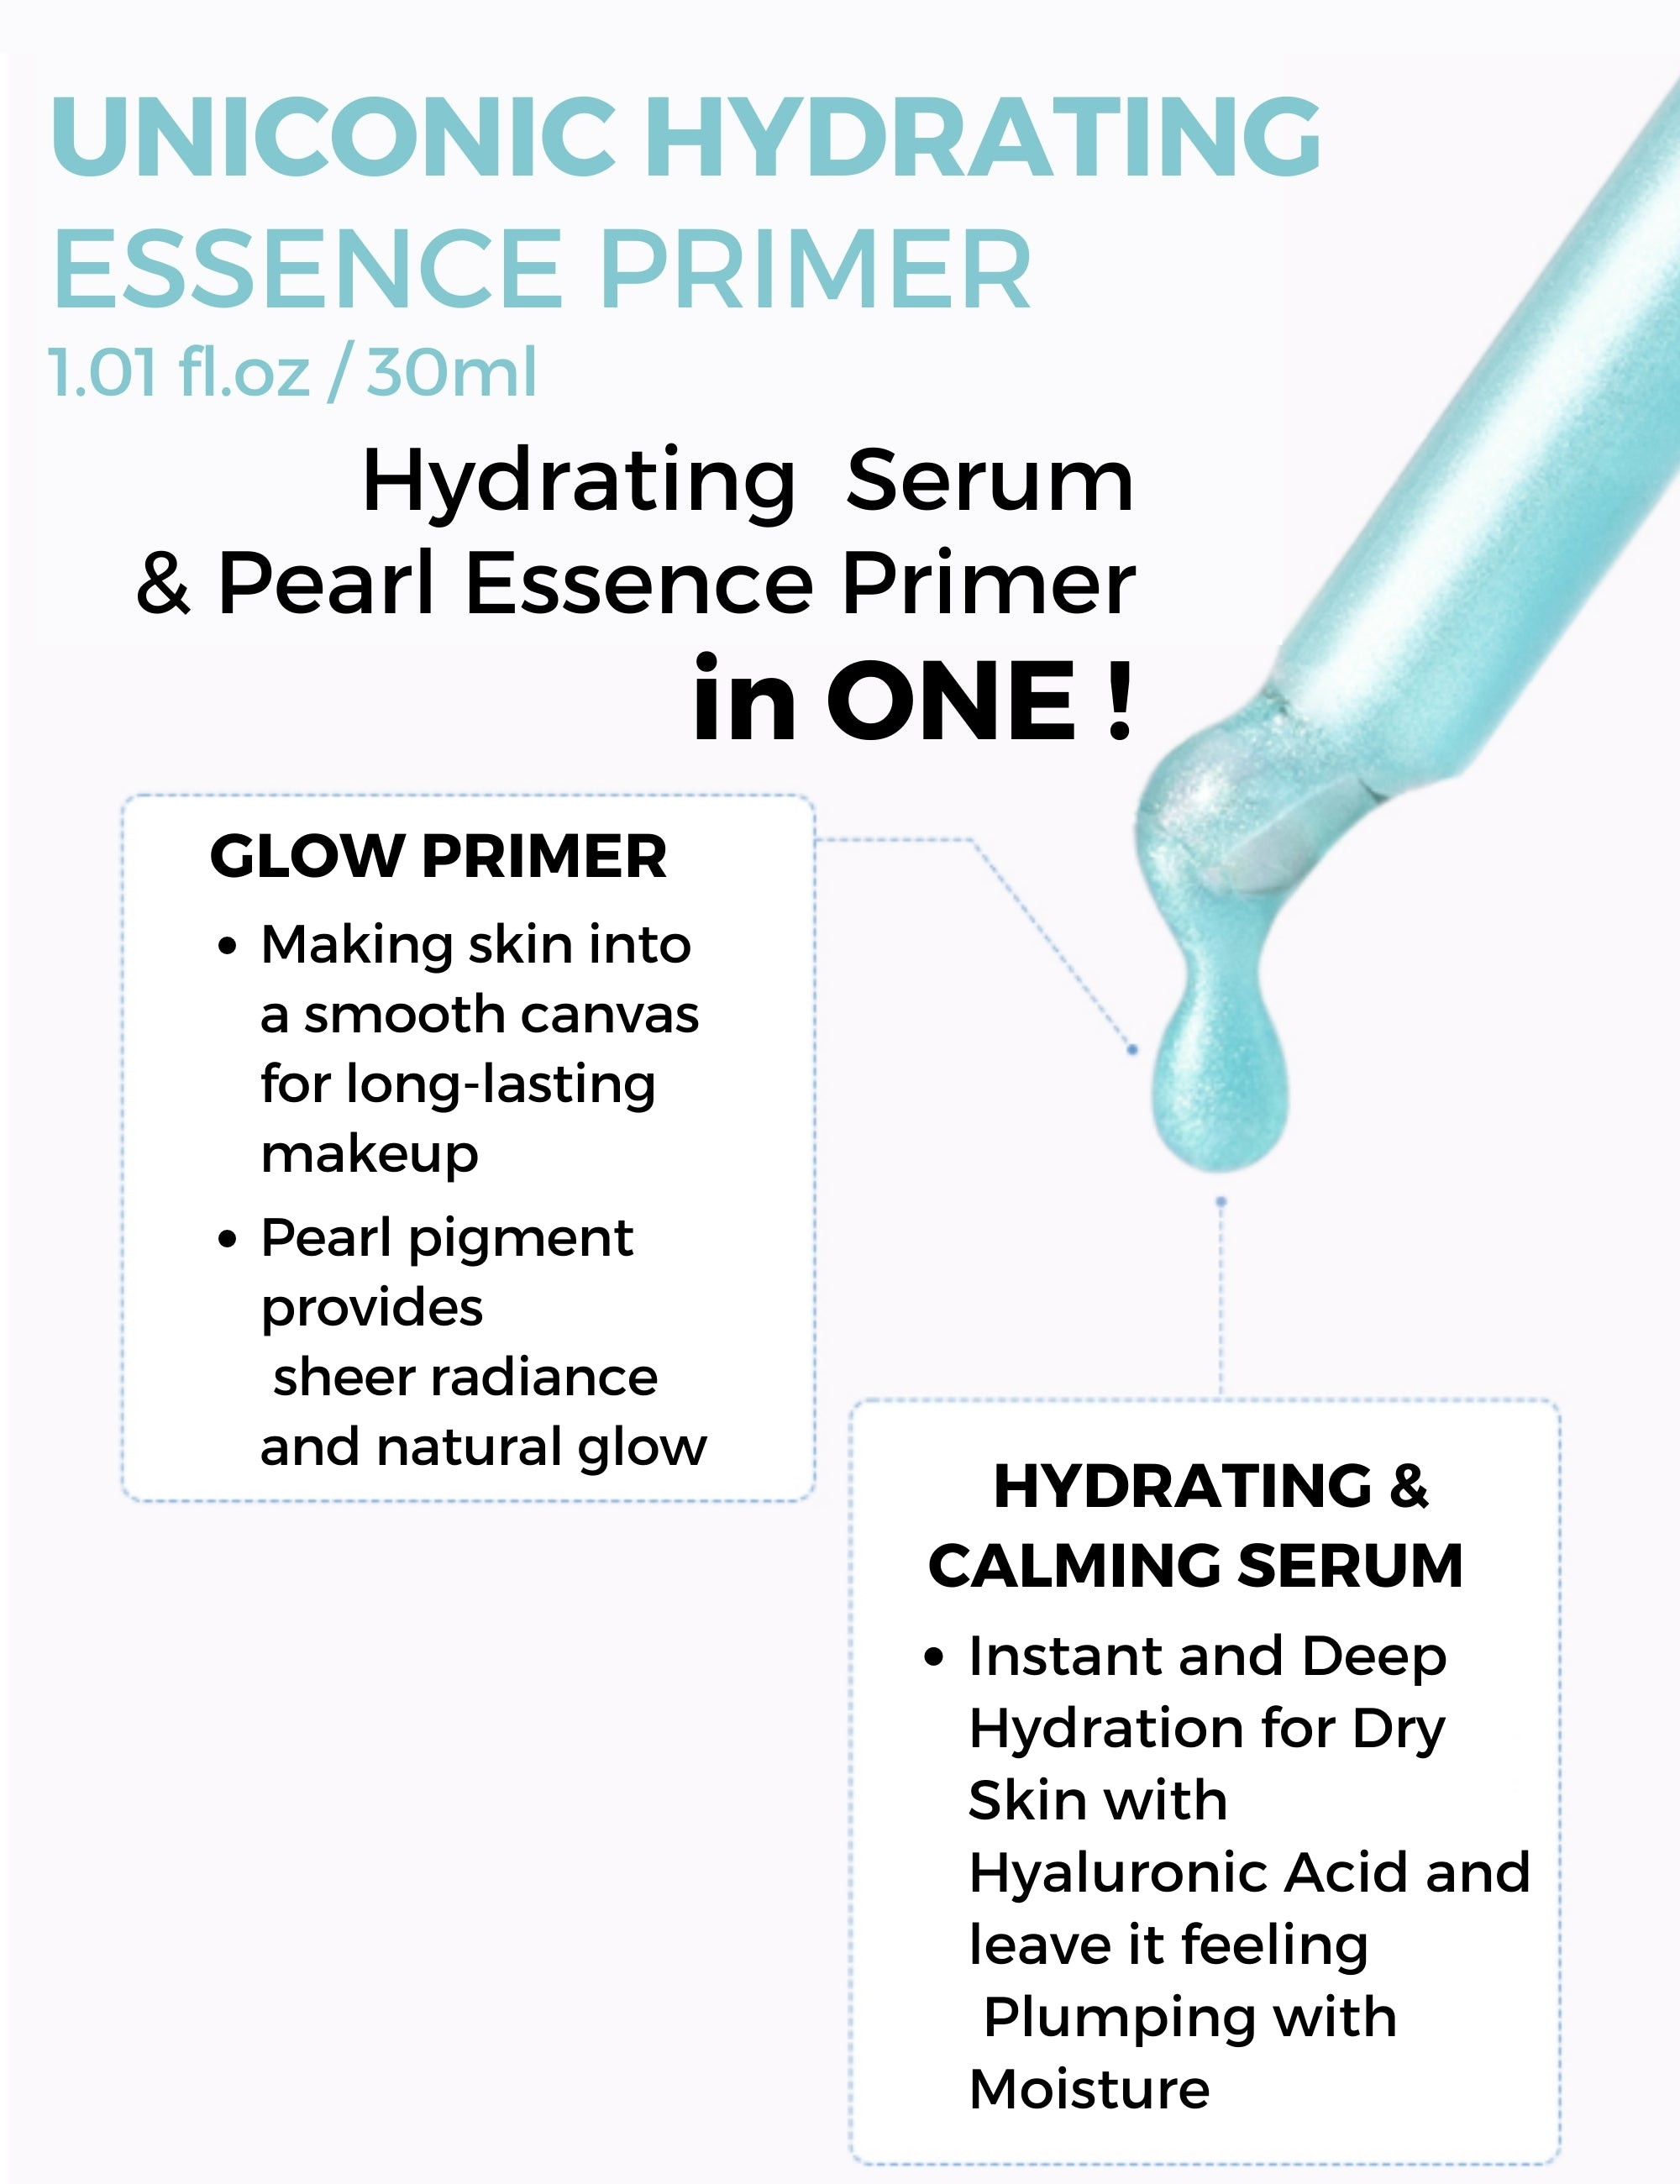 UNICONIC Hydrating Glow Face Serum to Primer for Dry Skin 1.01fl.oz (30ml) - SELF BEAUTY